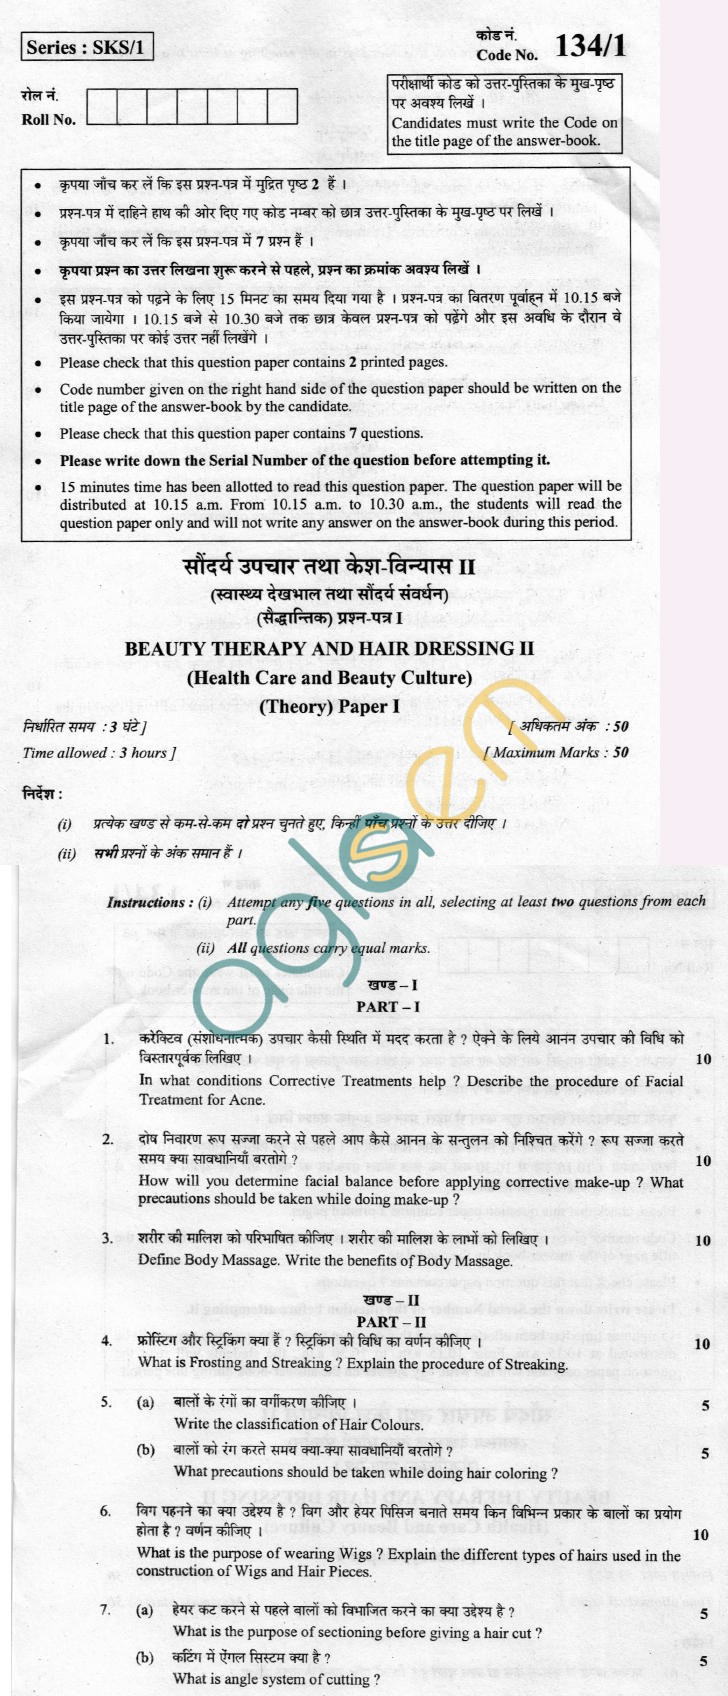 CBSE Board Exam 2013 Class XII Question Paper - Beauty Therapy